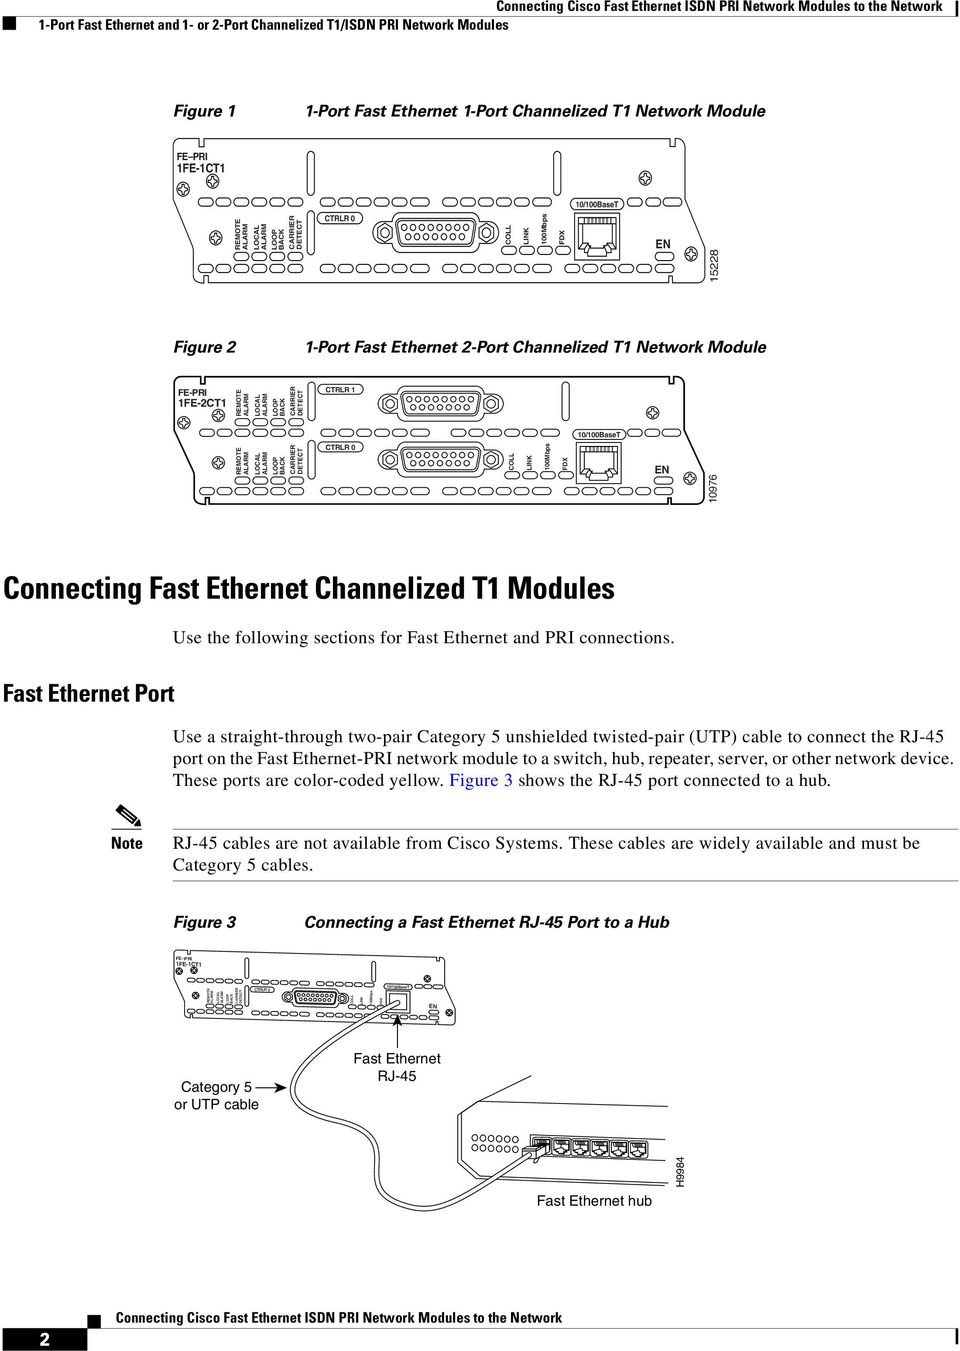 Fast Ethernet Port Use a straight-through two-pair Category 5 unshielded twisted-pair (UTP) cable to connect the RJ-45 port on the Fast Ethernet-PRI network module to a switch, hub, repeater, server,